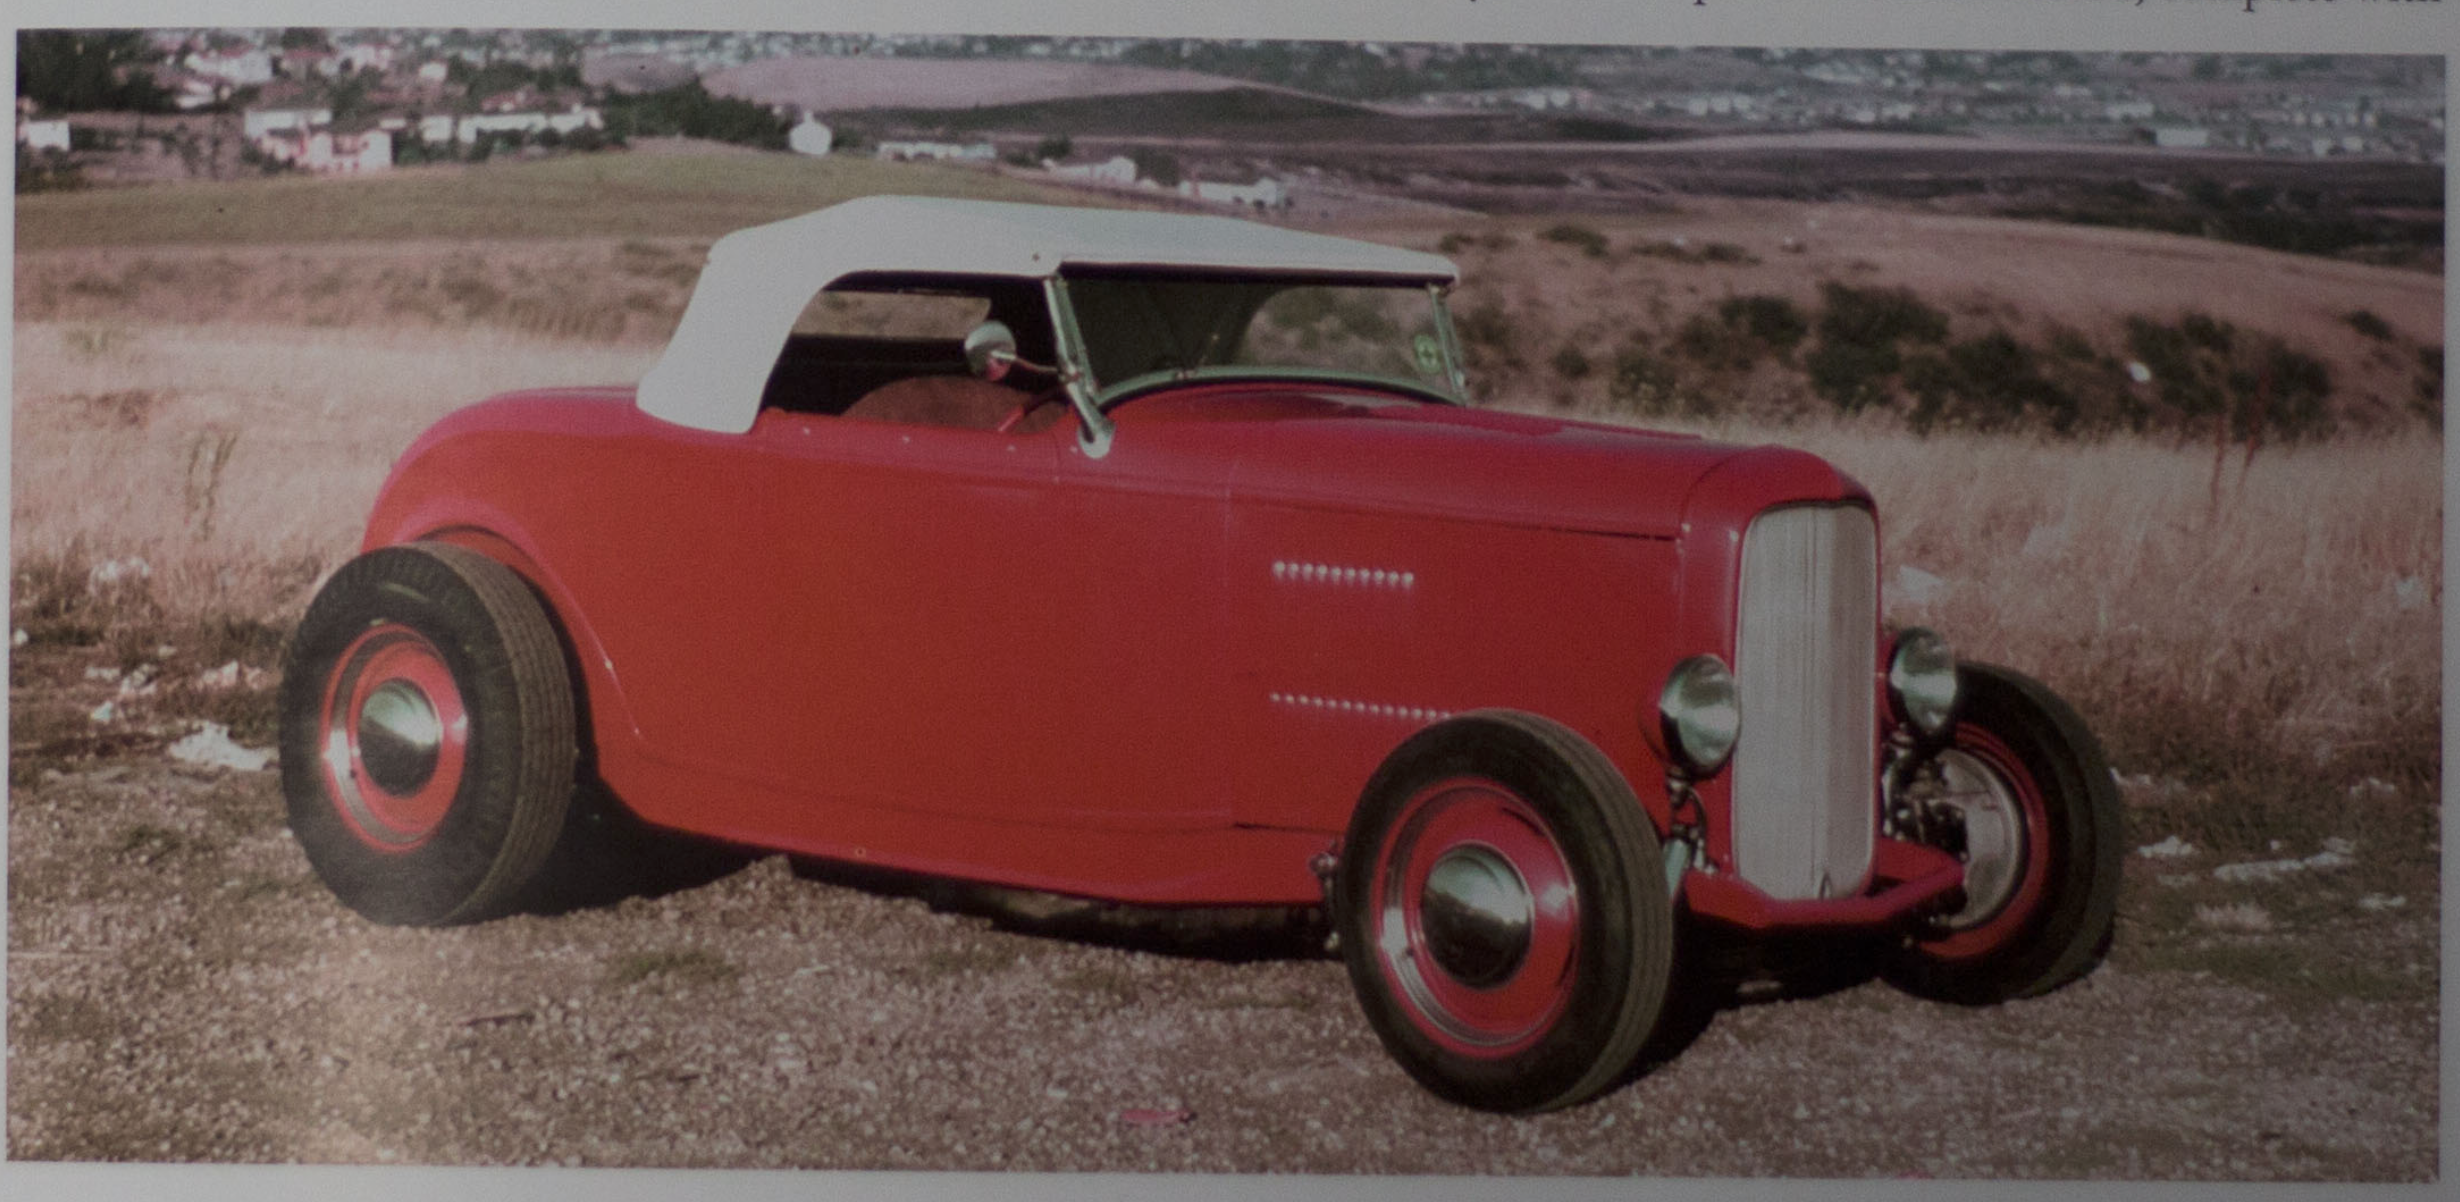 McGee Roadster - 1932 Ford - in period